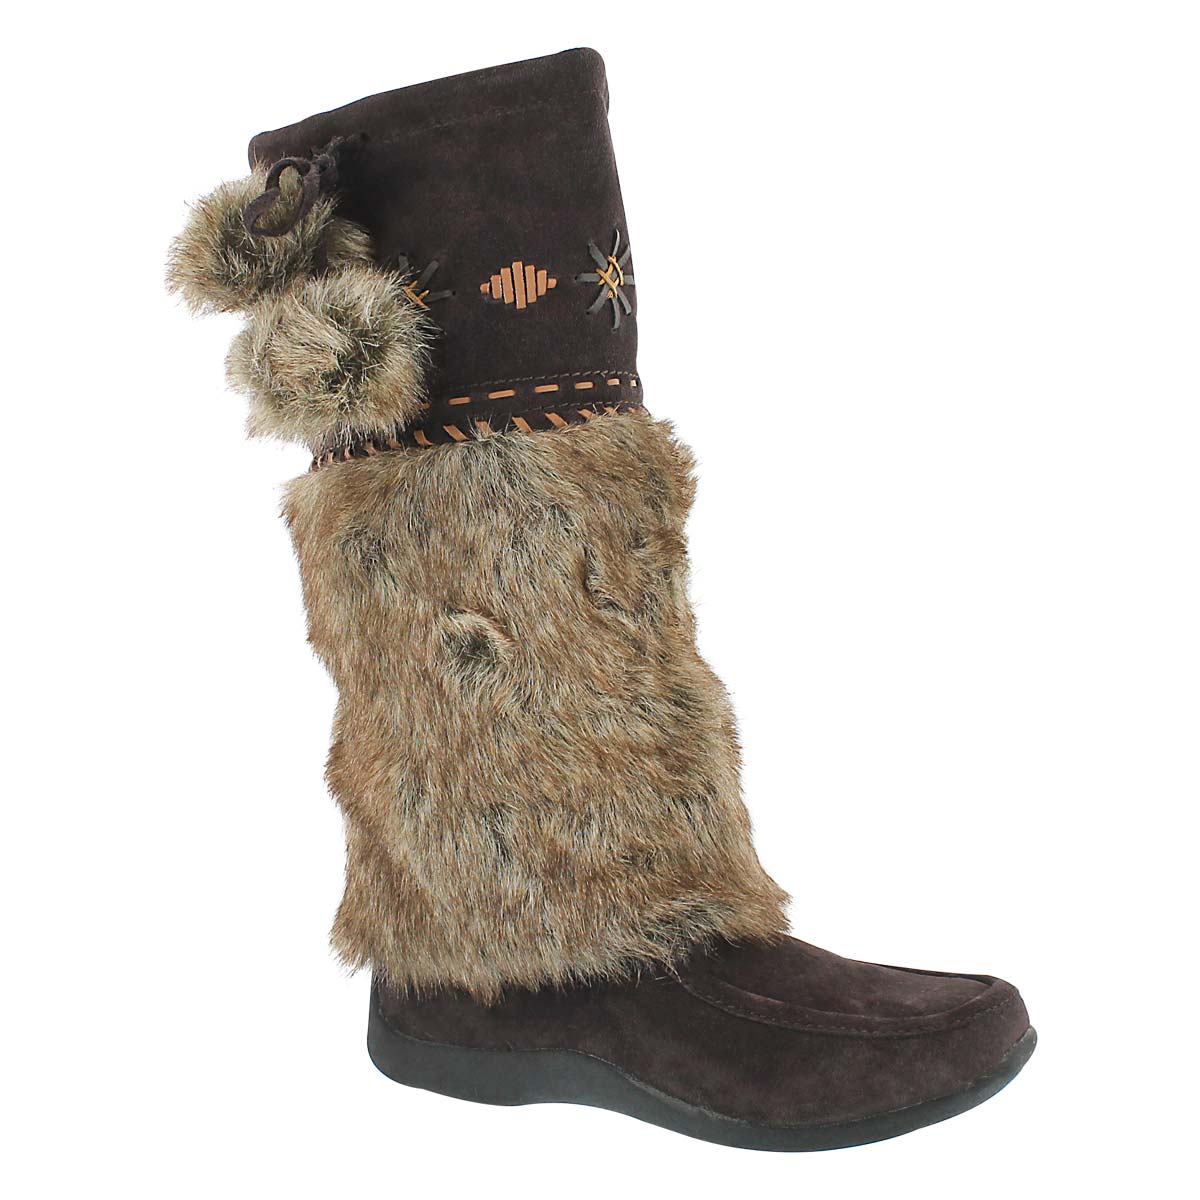 Women's CANDY 4 brown suede mukluks